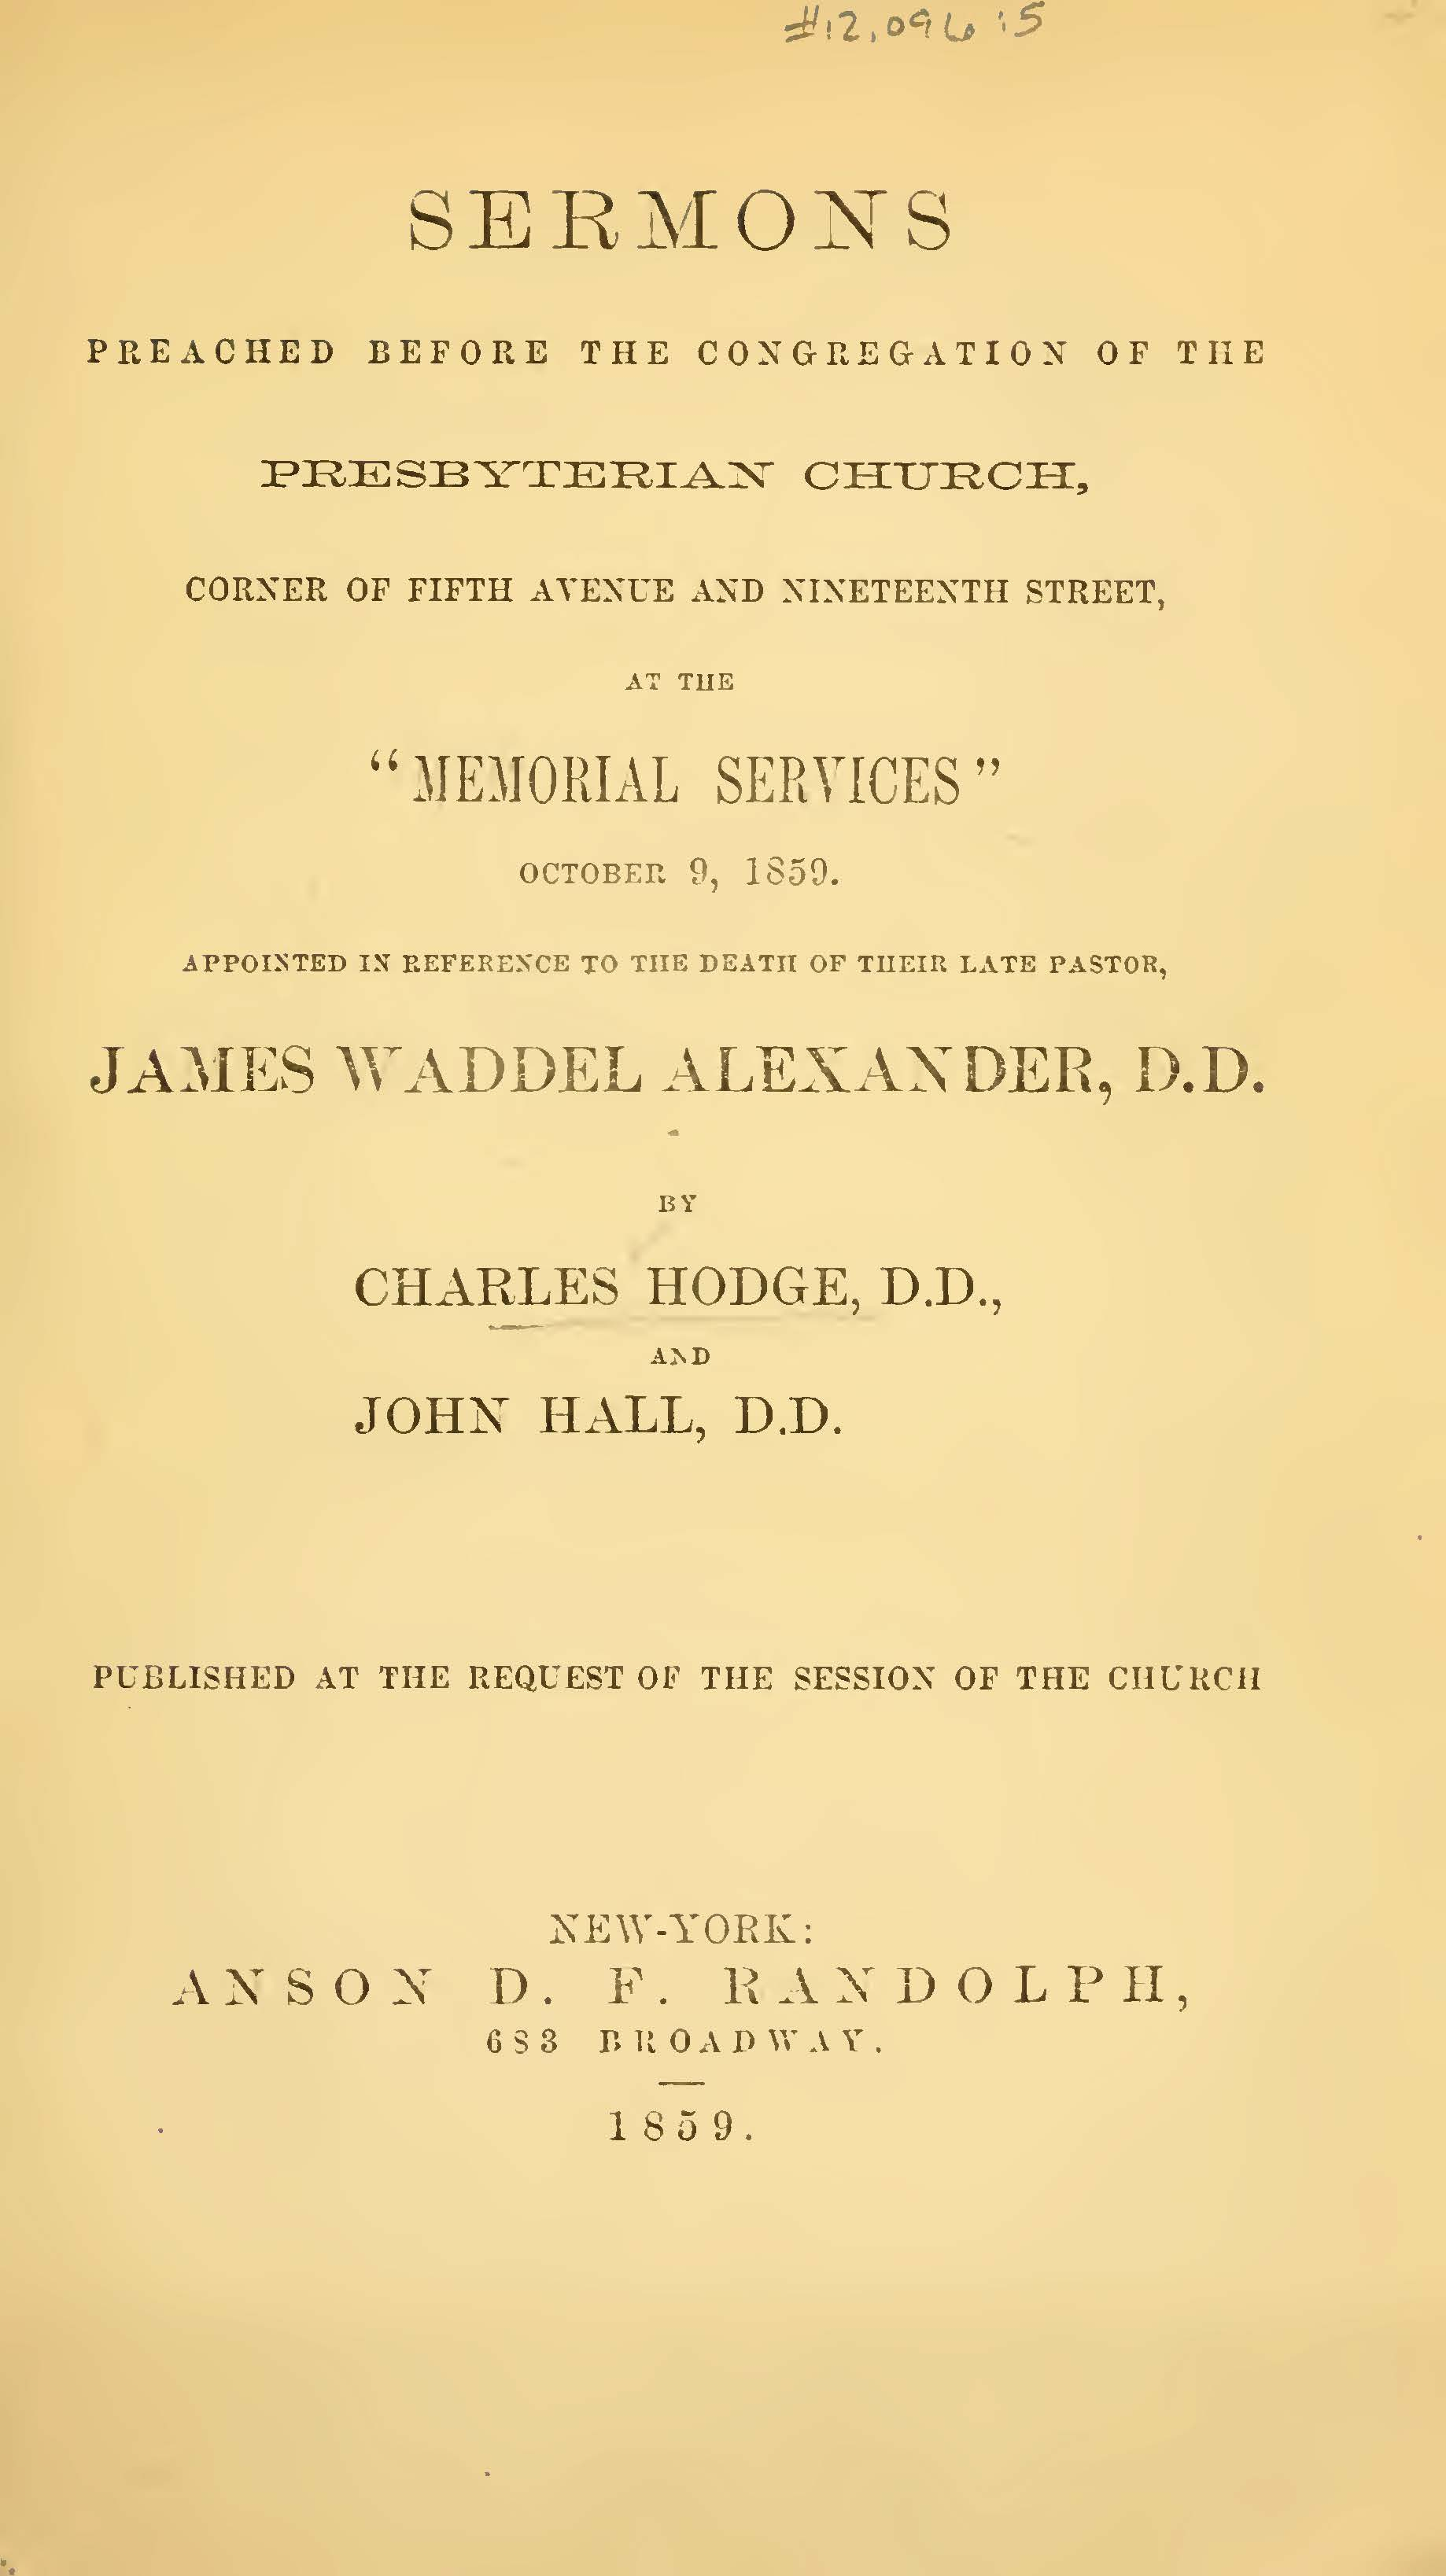 Hodge, Charles, Sermons Preached at the Memorial Services for J.W. Alexander Title Page.jpg